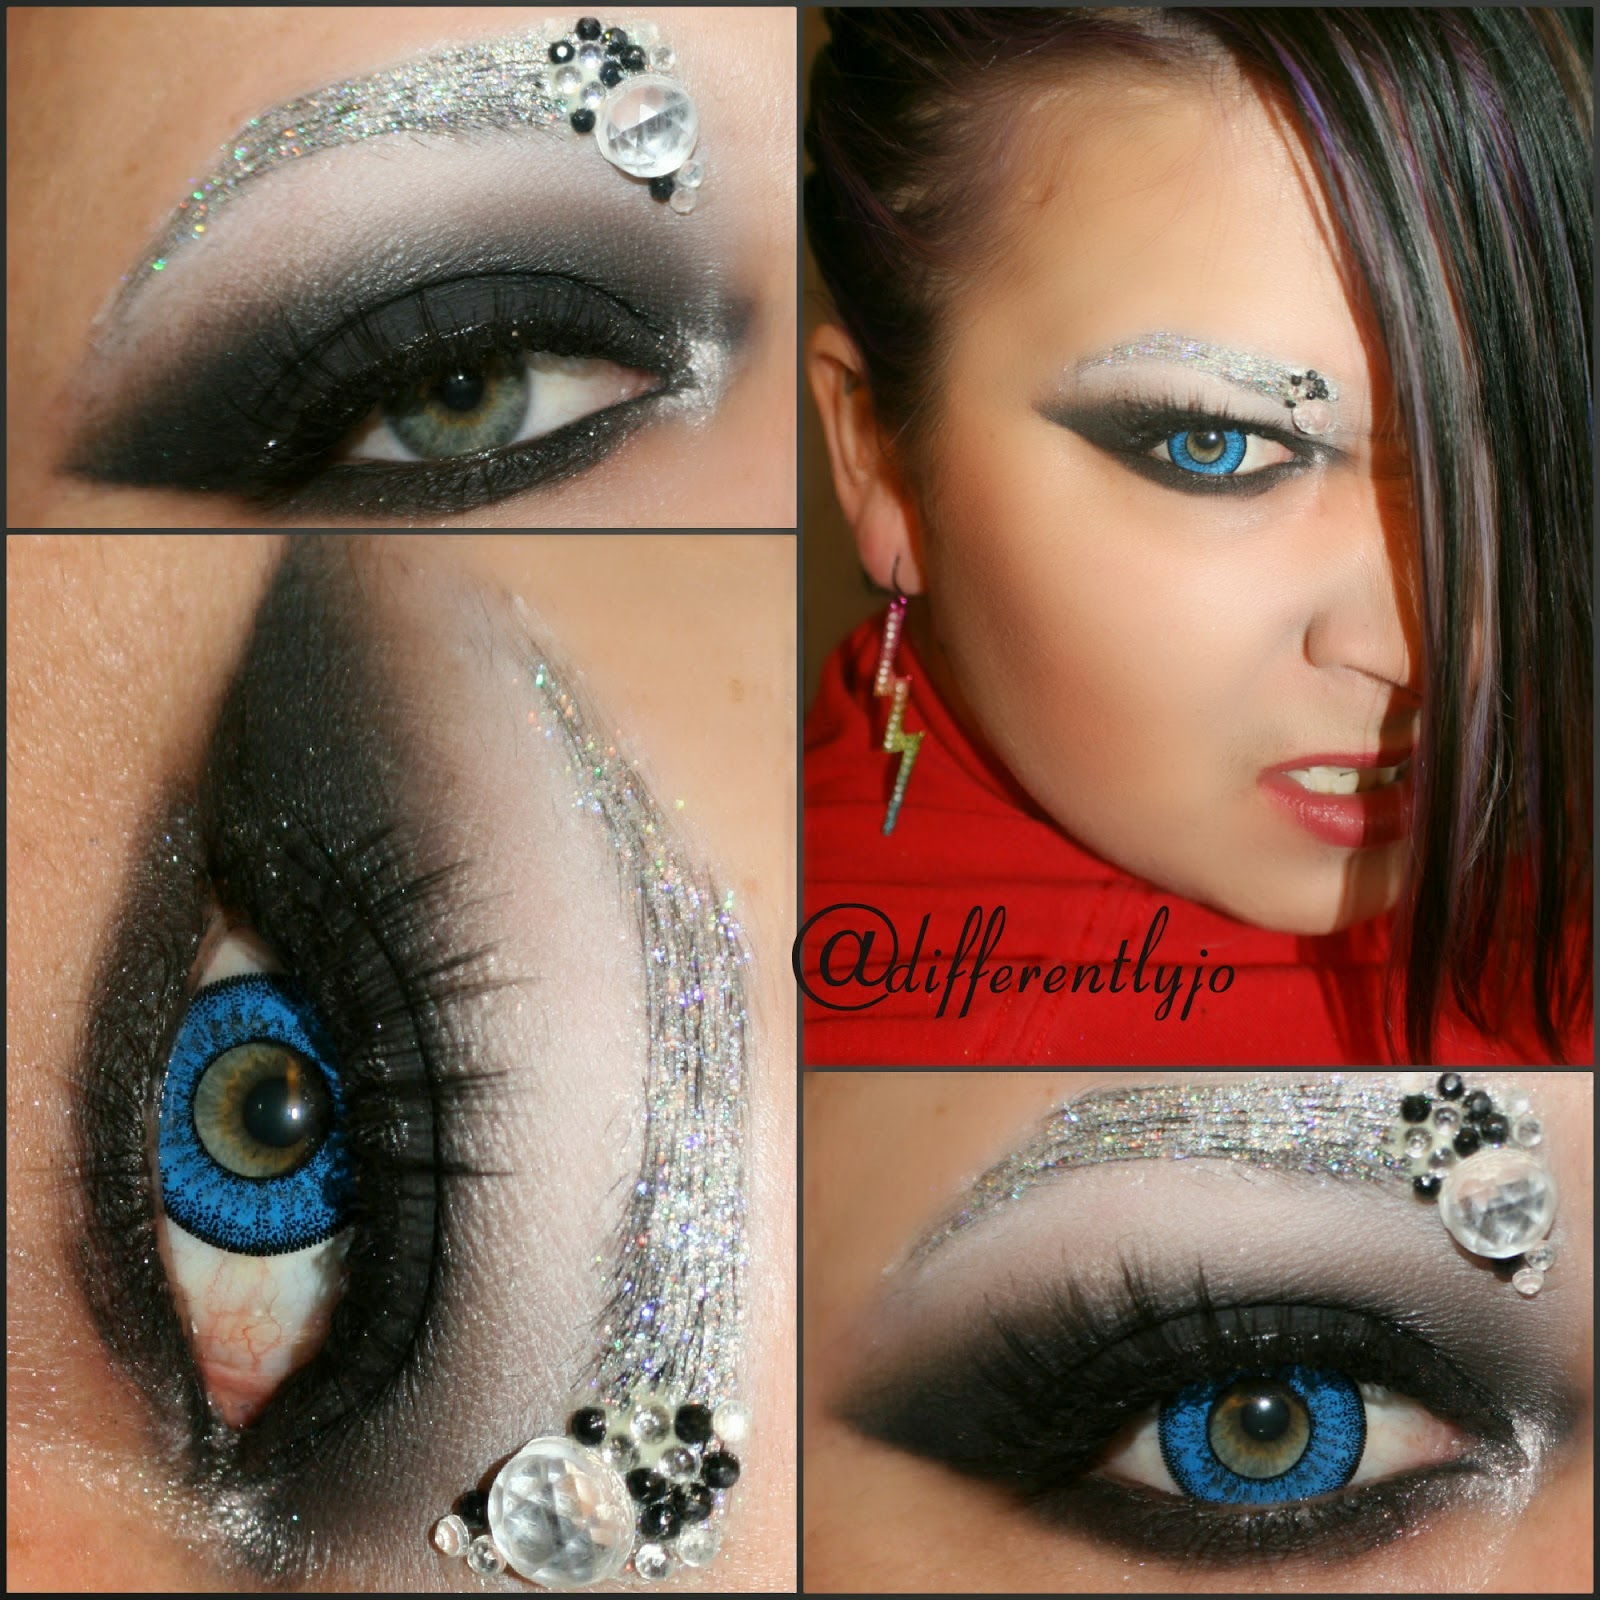 Beuberry Vivid Blue colored contacts